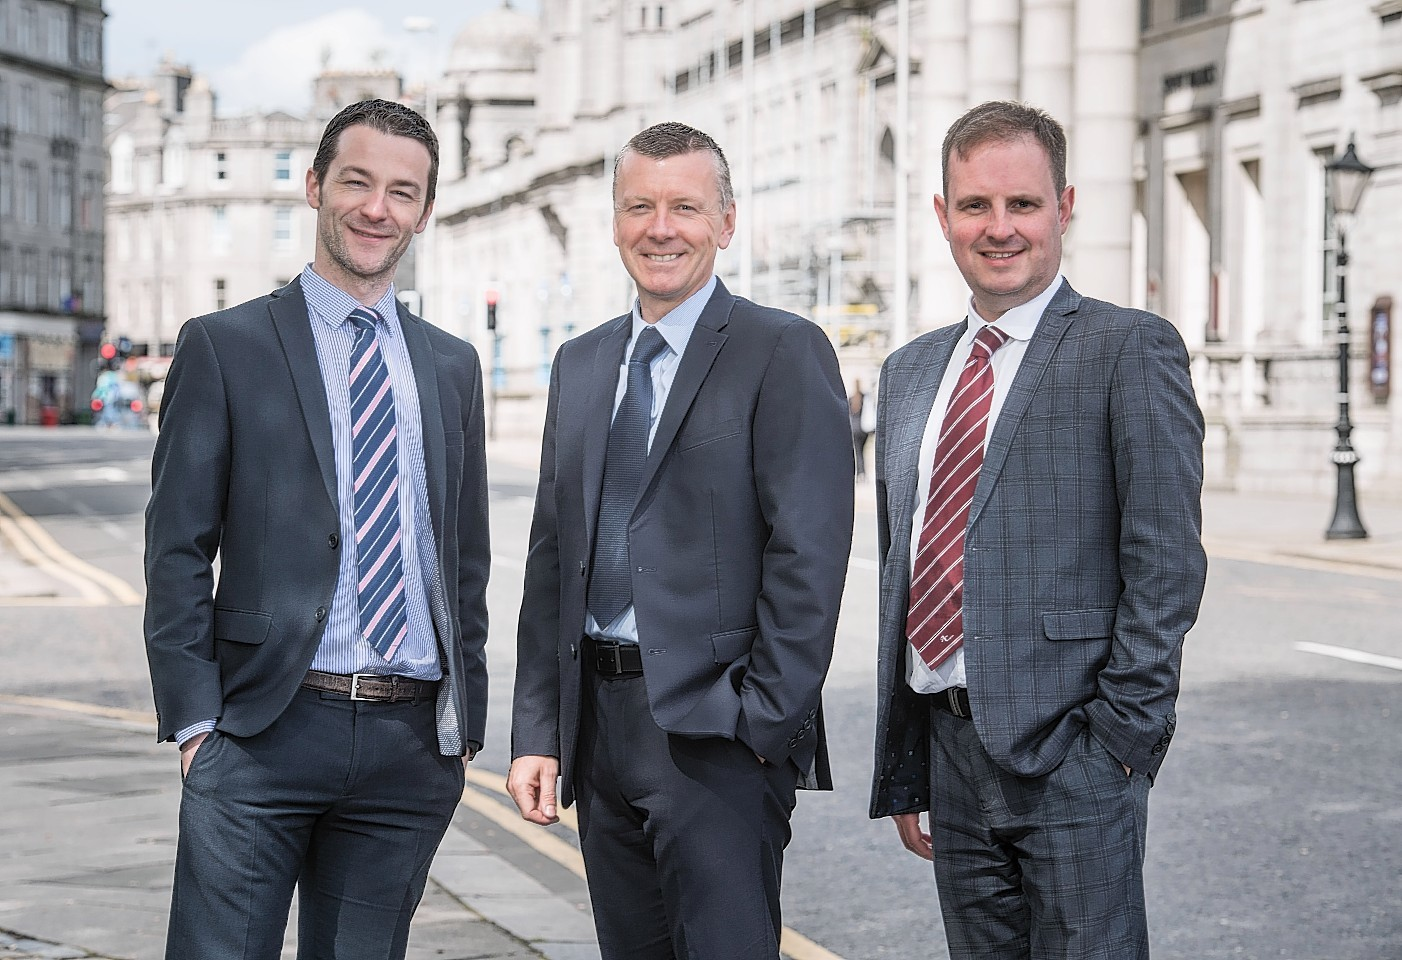 l-r Derek Mitchell, partner, and Stuart Petrie, private client tax senior manager, both AAB, and Adrian Sangster, national leasing director at Aberdein Considine